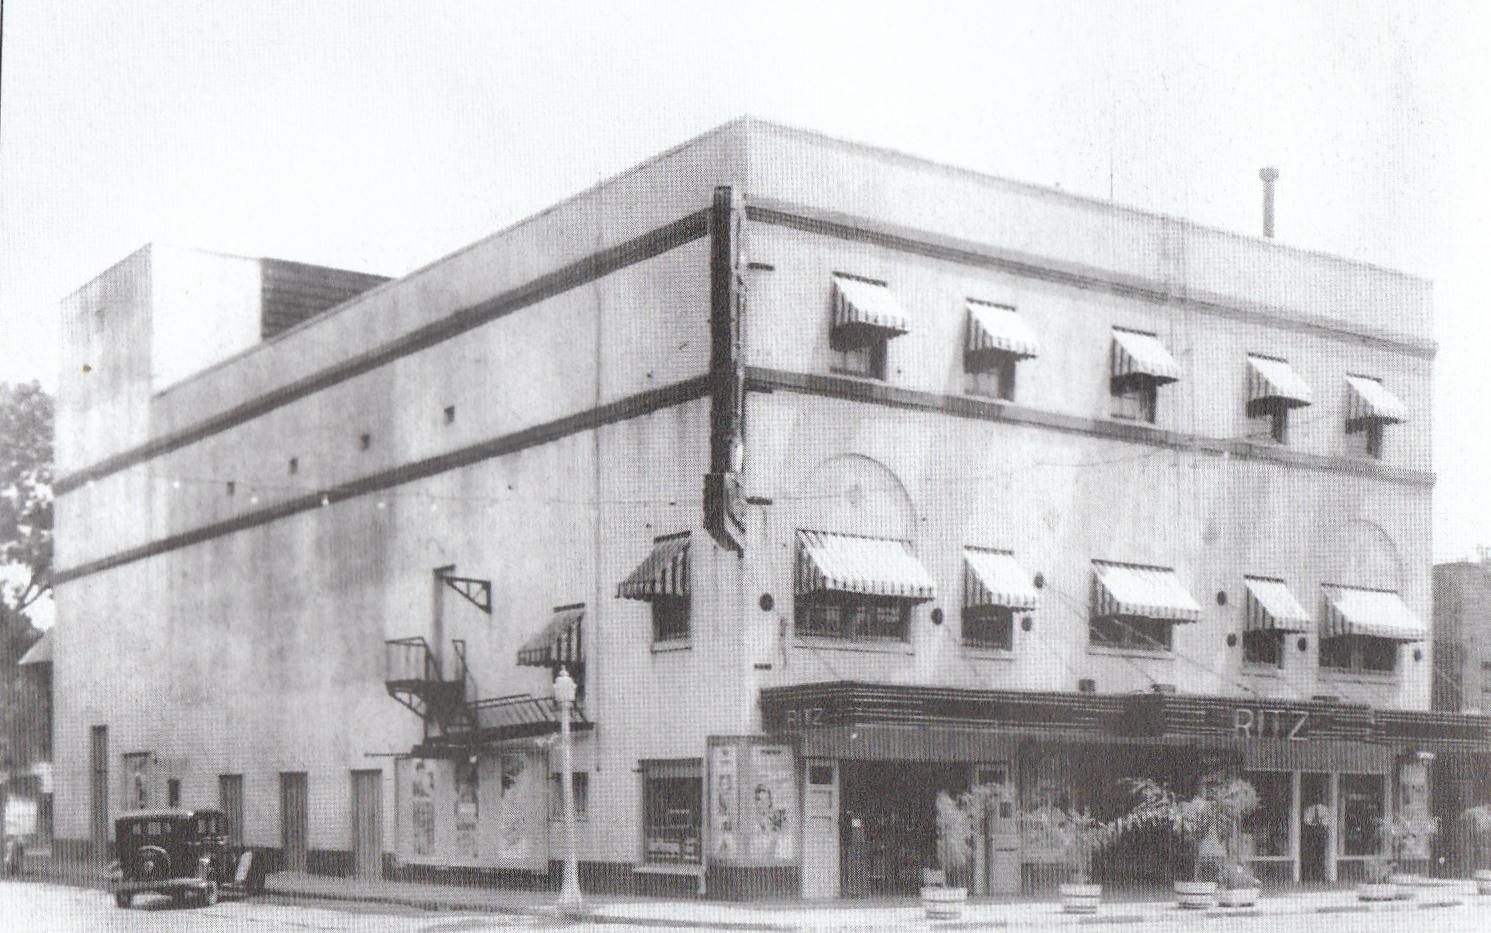 Picture of the theater when it was the Ritz Theater in the mid 1990s.